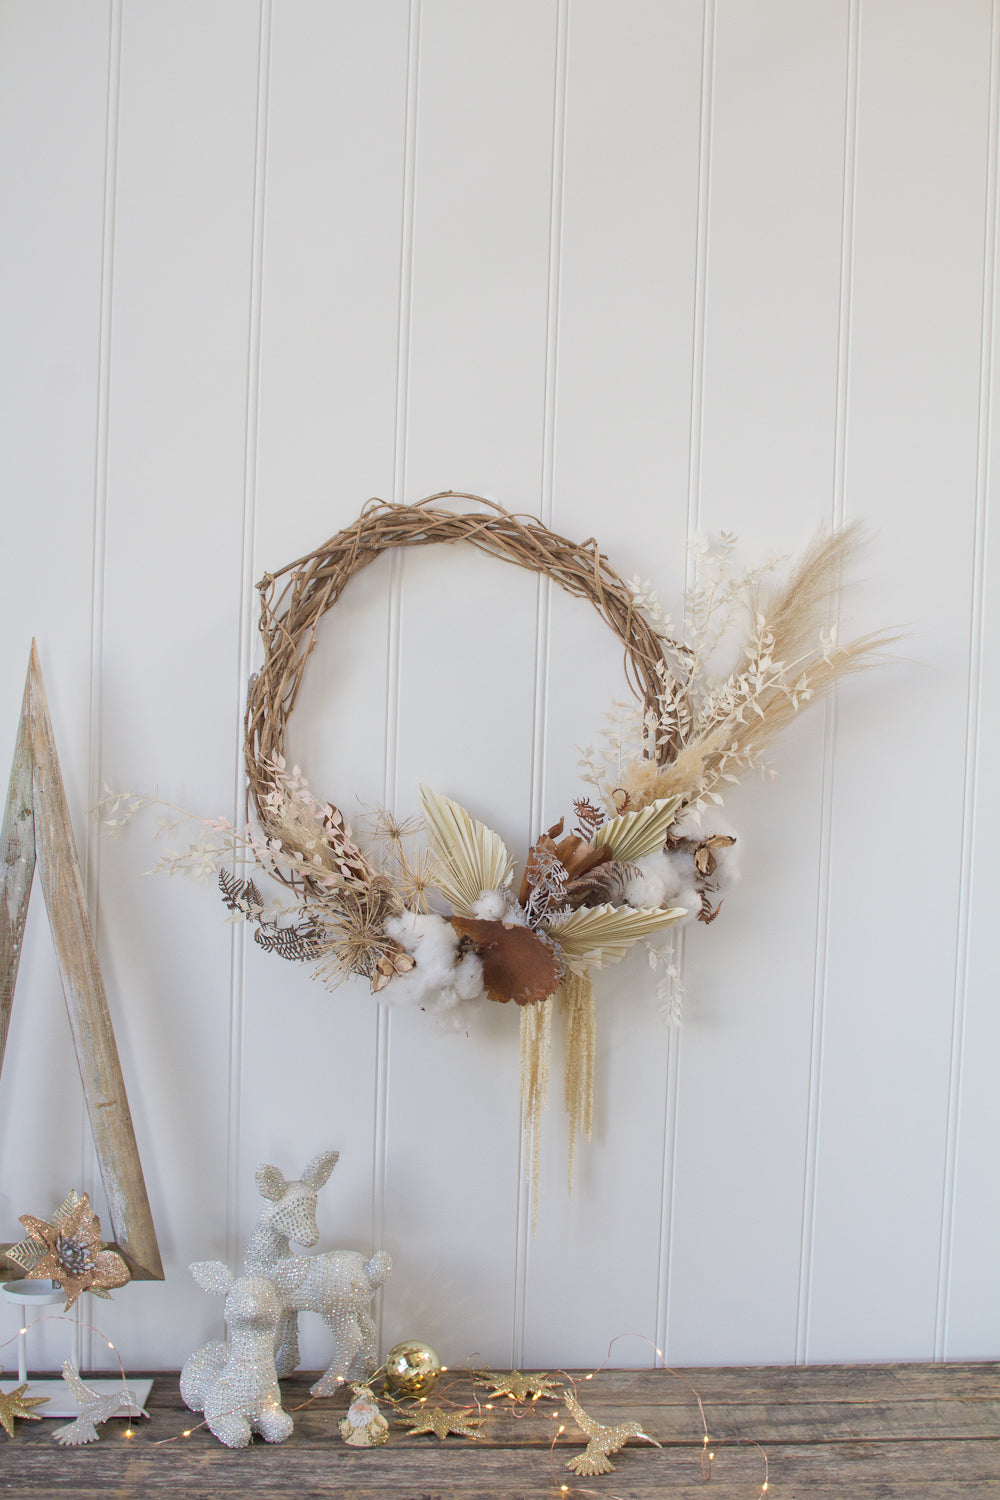 Boho Wreath Exact As Image